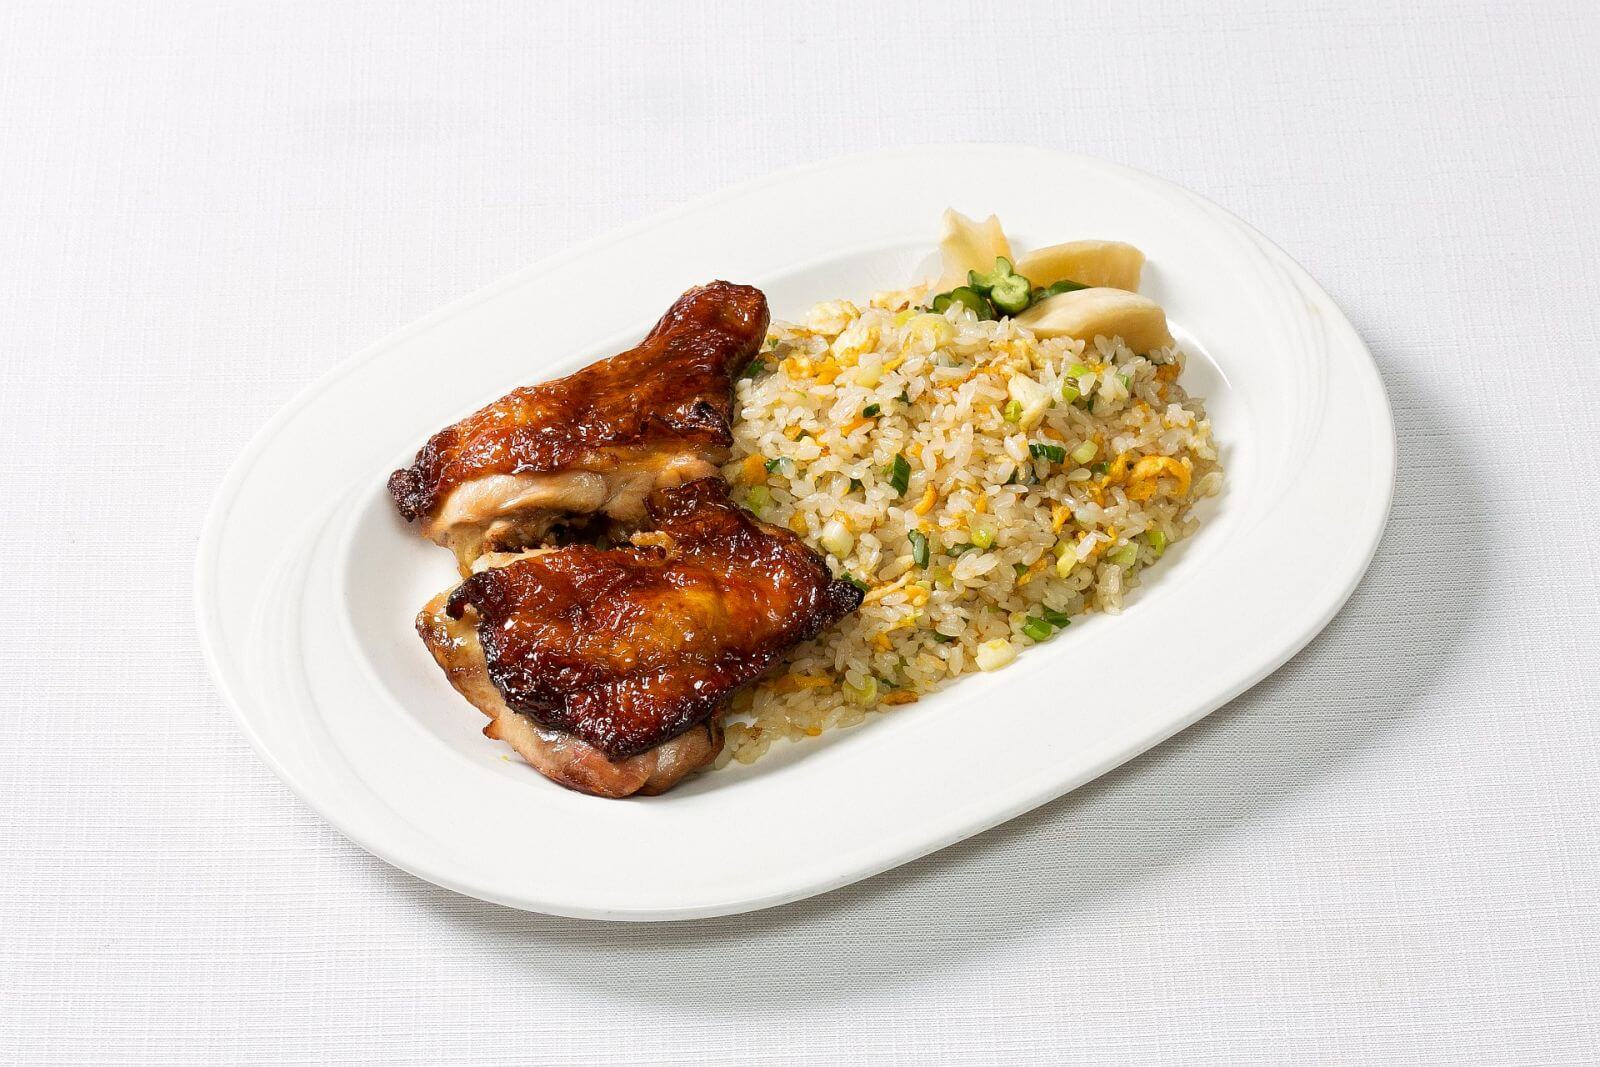 Ambassador Hotel Taipei Room Service Fried Rice with Roast Chicken